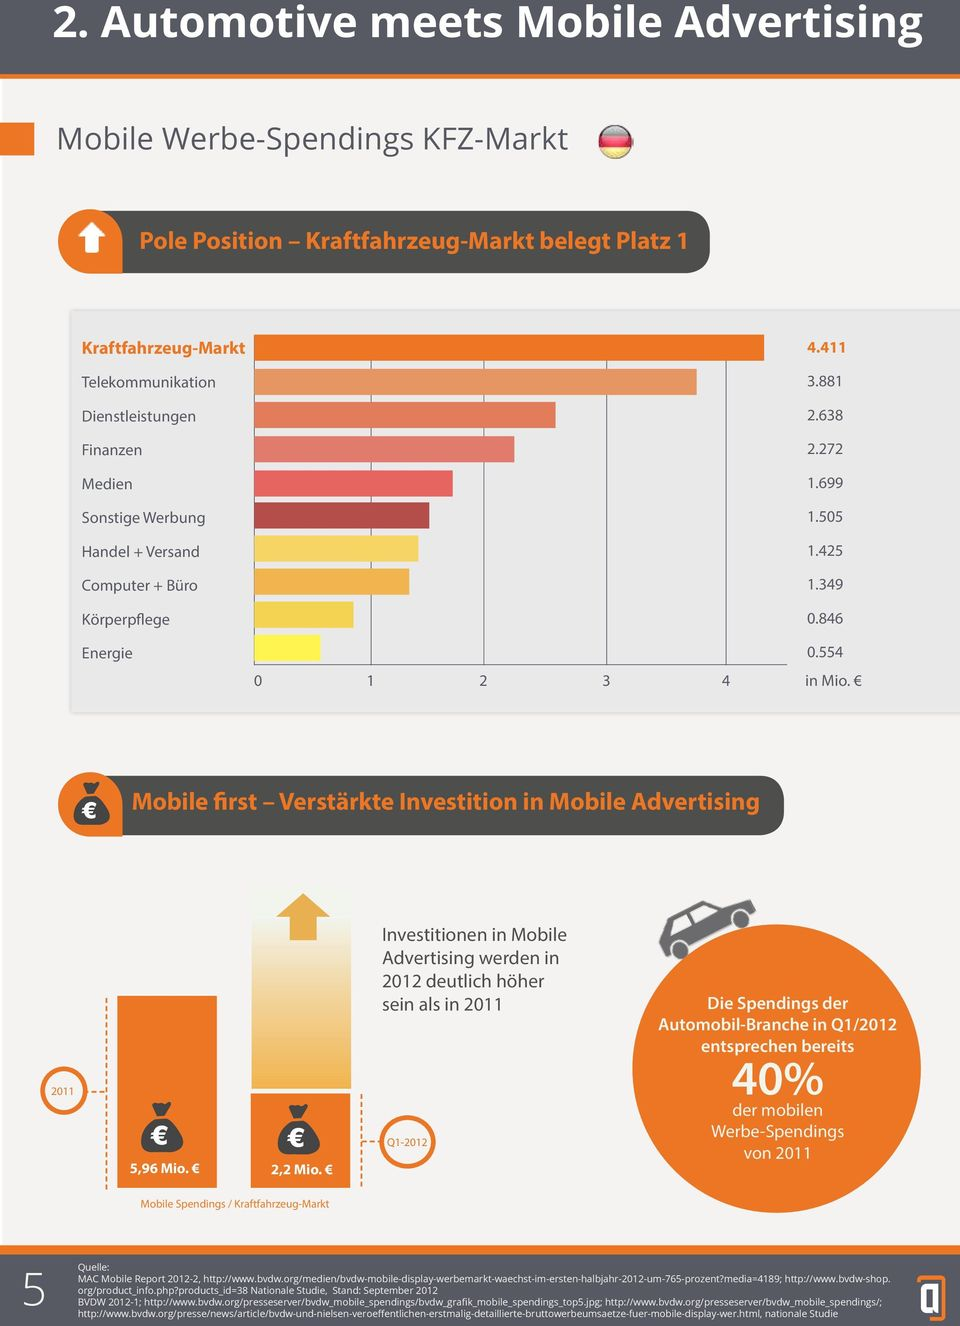 Mobile first Verstärkte Investition in Mobile Advertising 2011 5,96 Mio. 2,2 Mio.